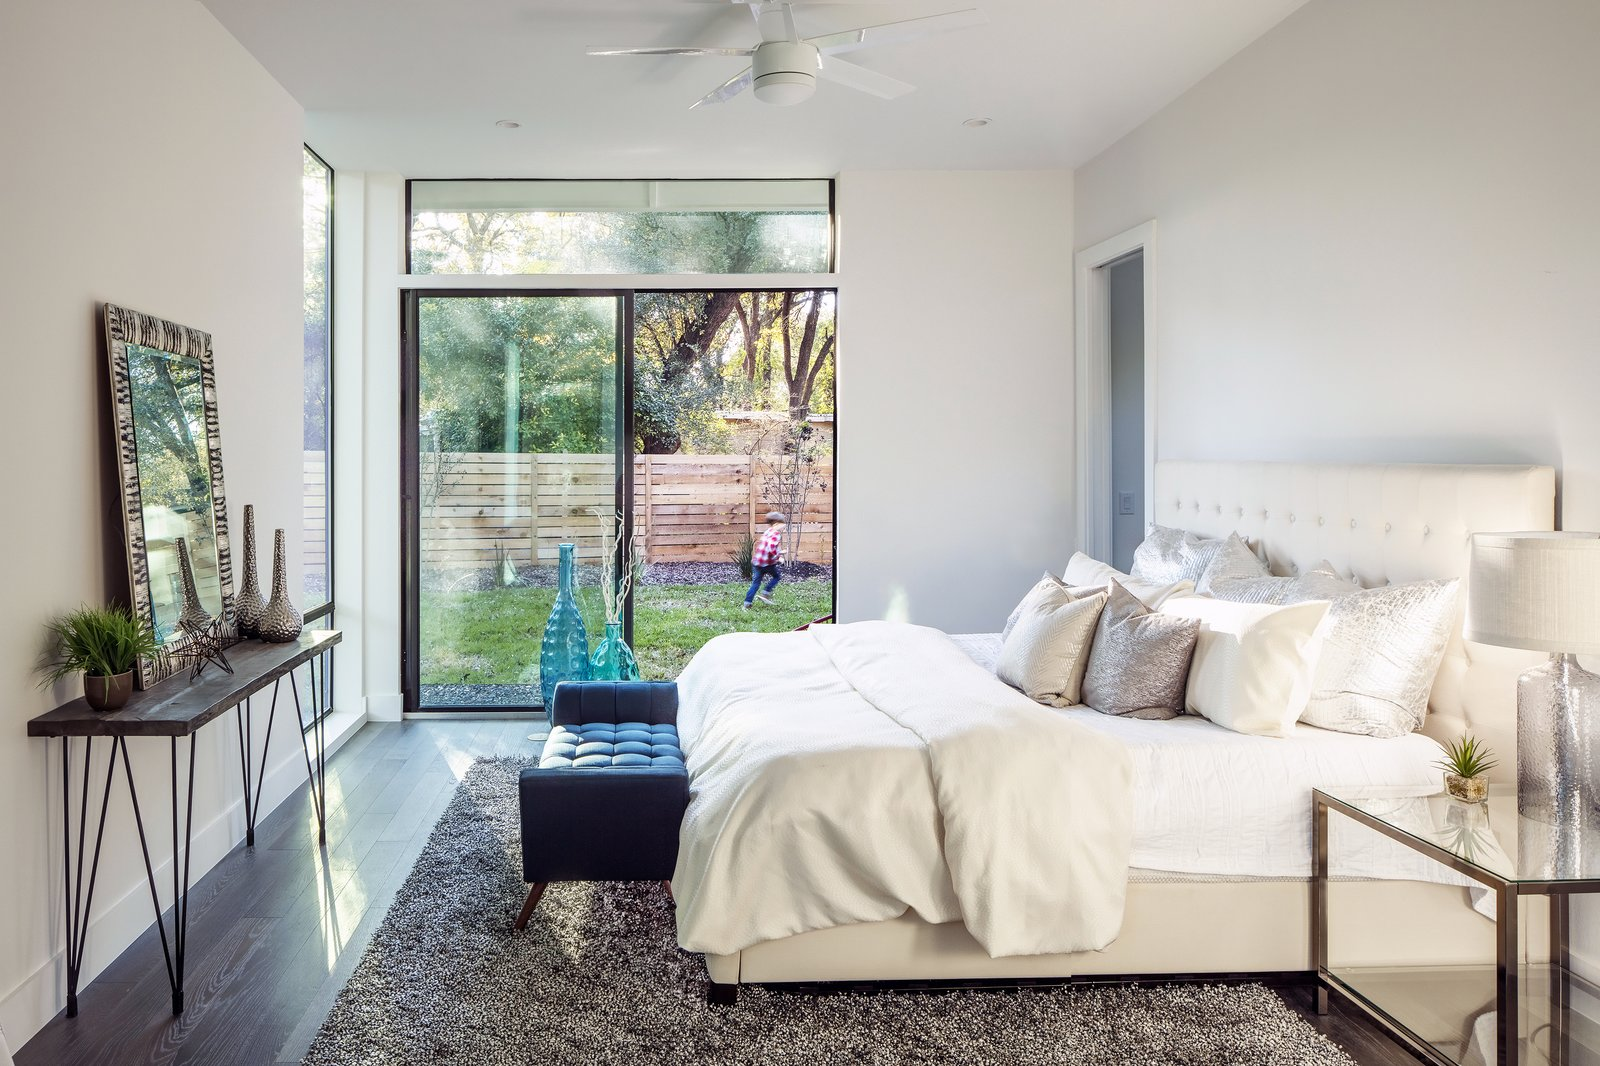 Strass Residence by Matt Fajkus Architecture | Photography: Atelier Wong Photography  Strass Residence by Matt Fajkus Architecture